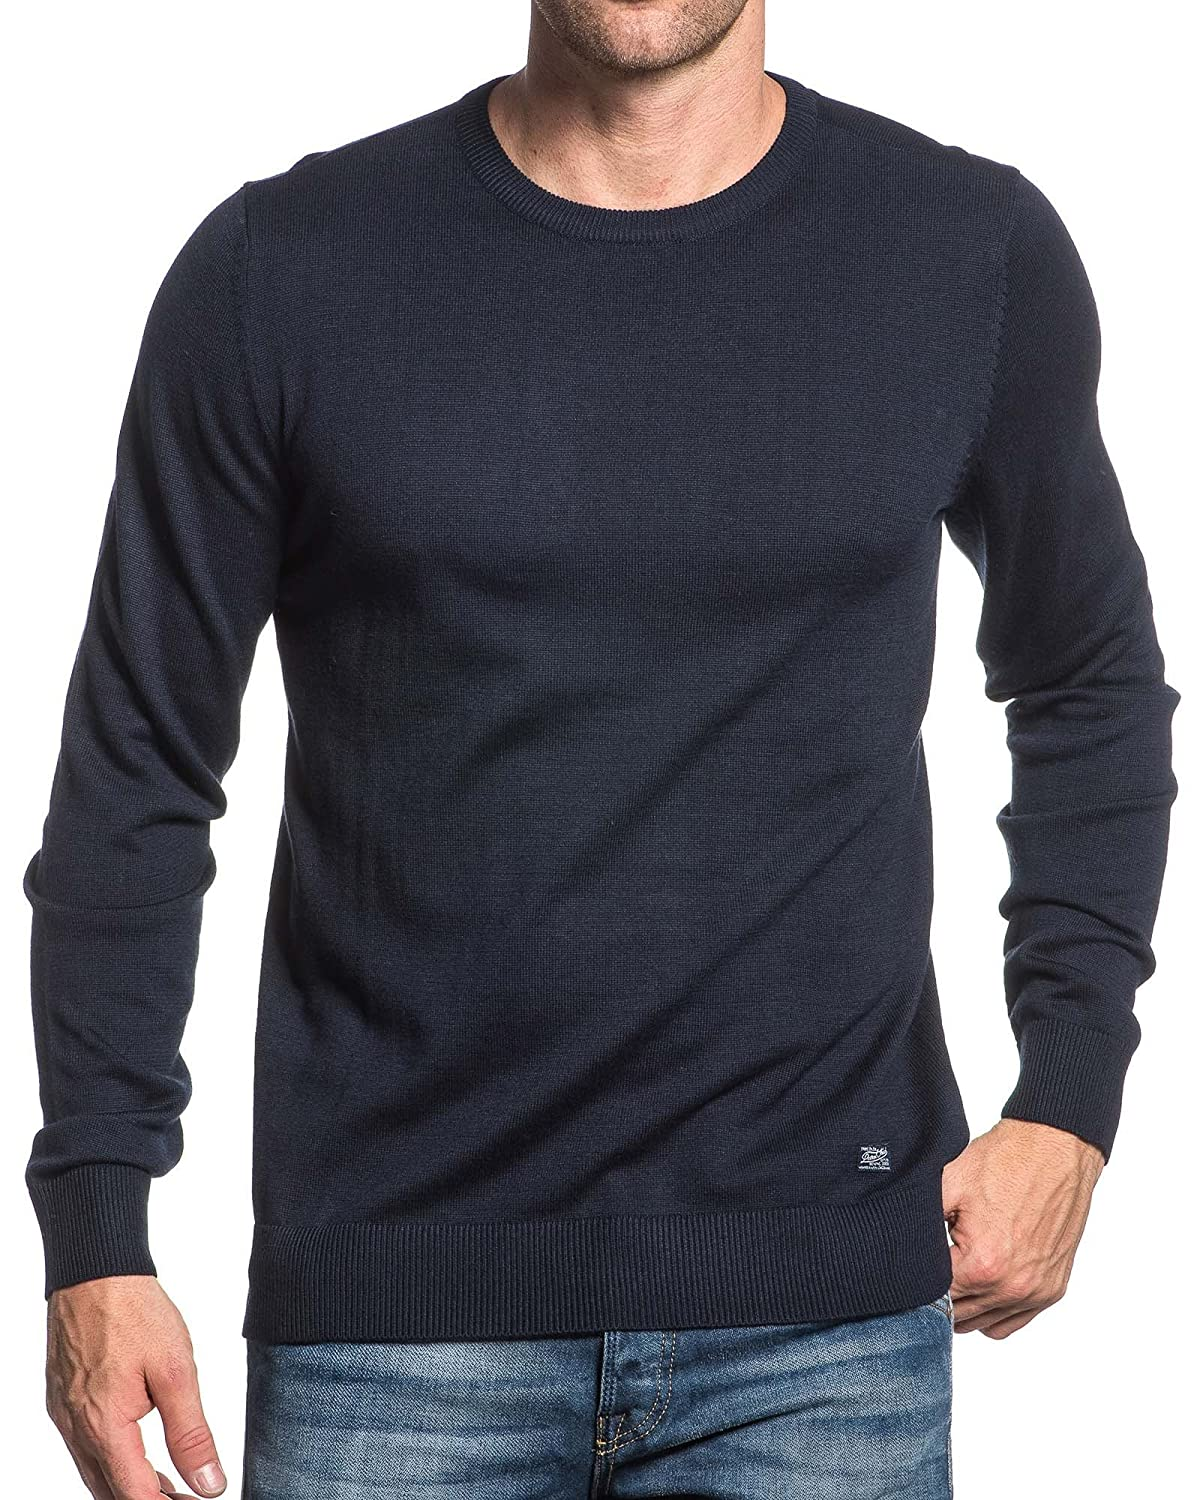 Petrol Industries - blue sweater man navy round neck